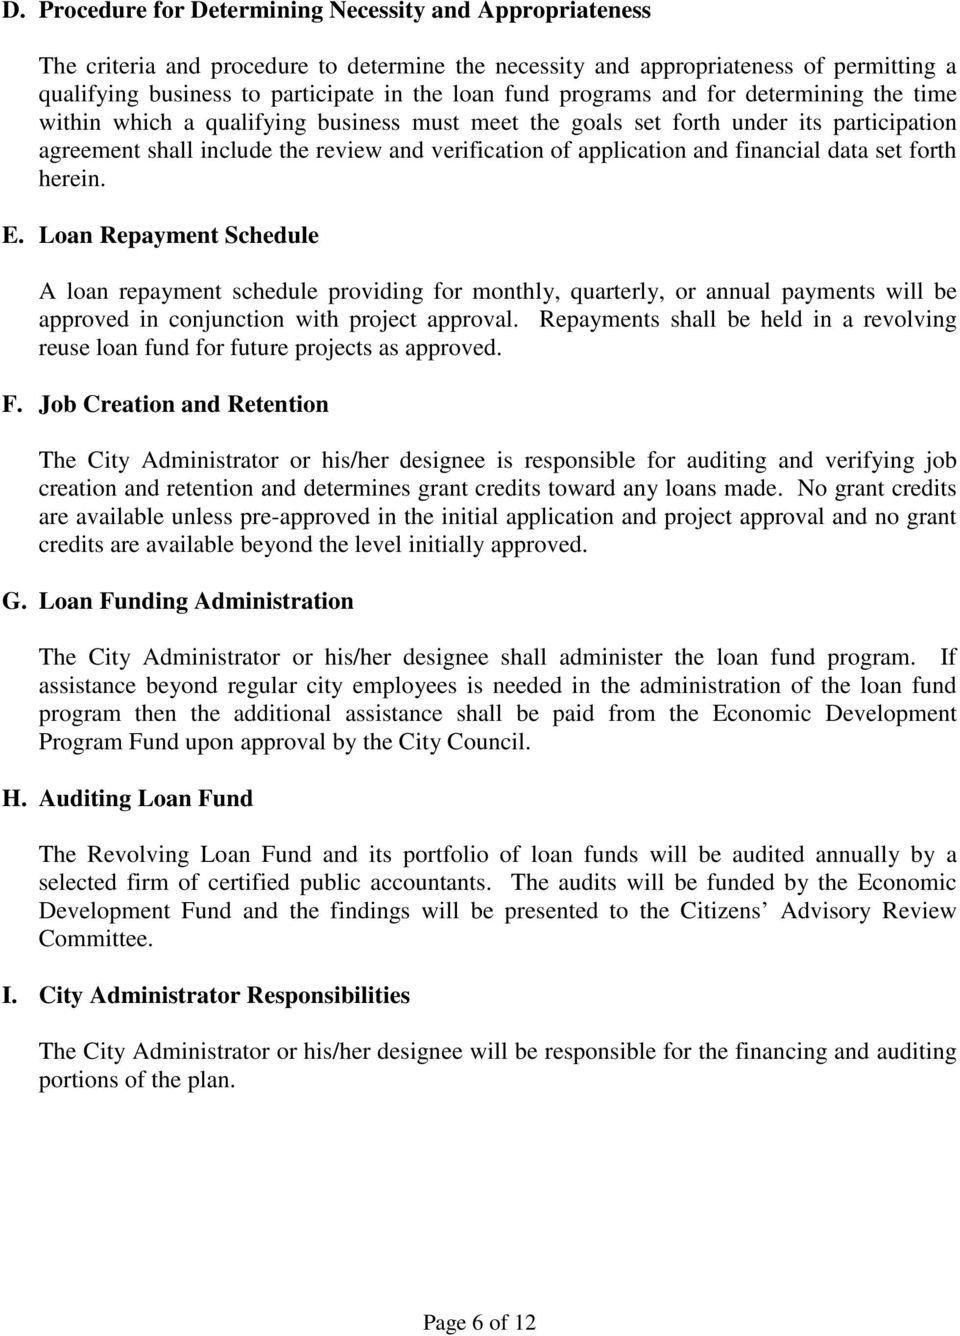 and financial data set forth herein. E. Loan Repayment Schedule A loan repayment schedule providing for monthly, quarterly, or annual payments will be approved in conjunction with project approval.